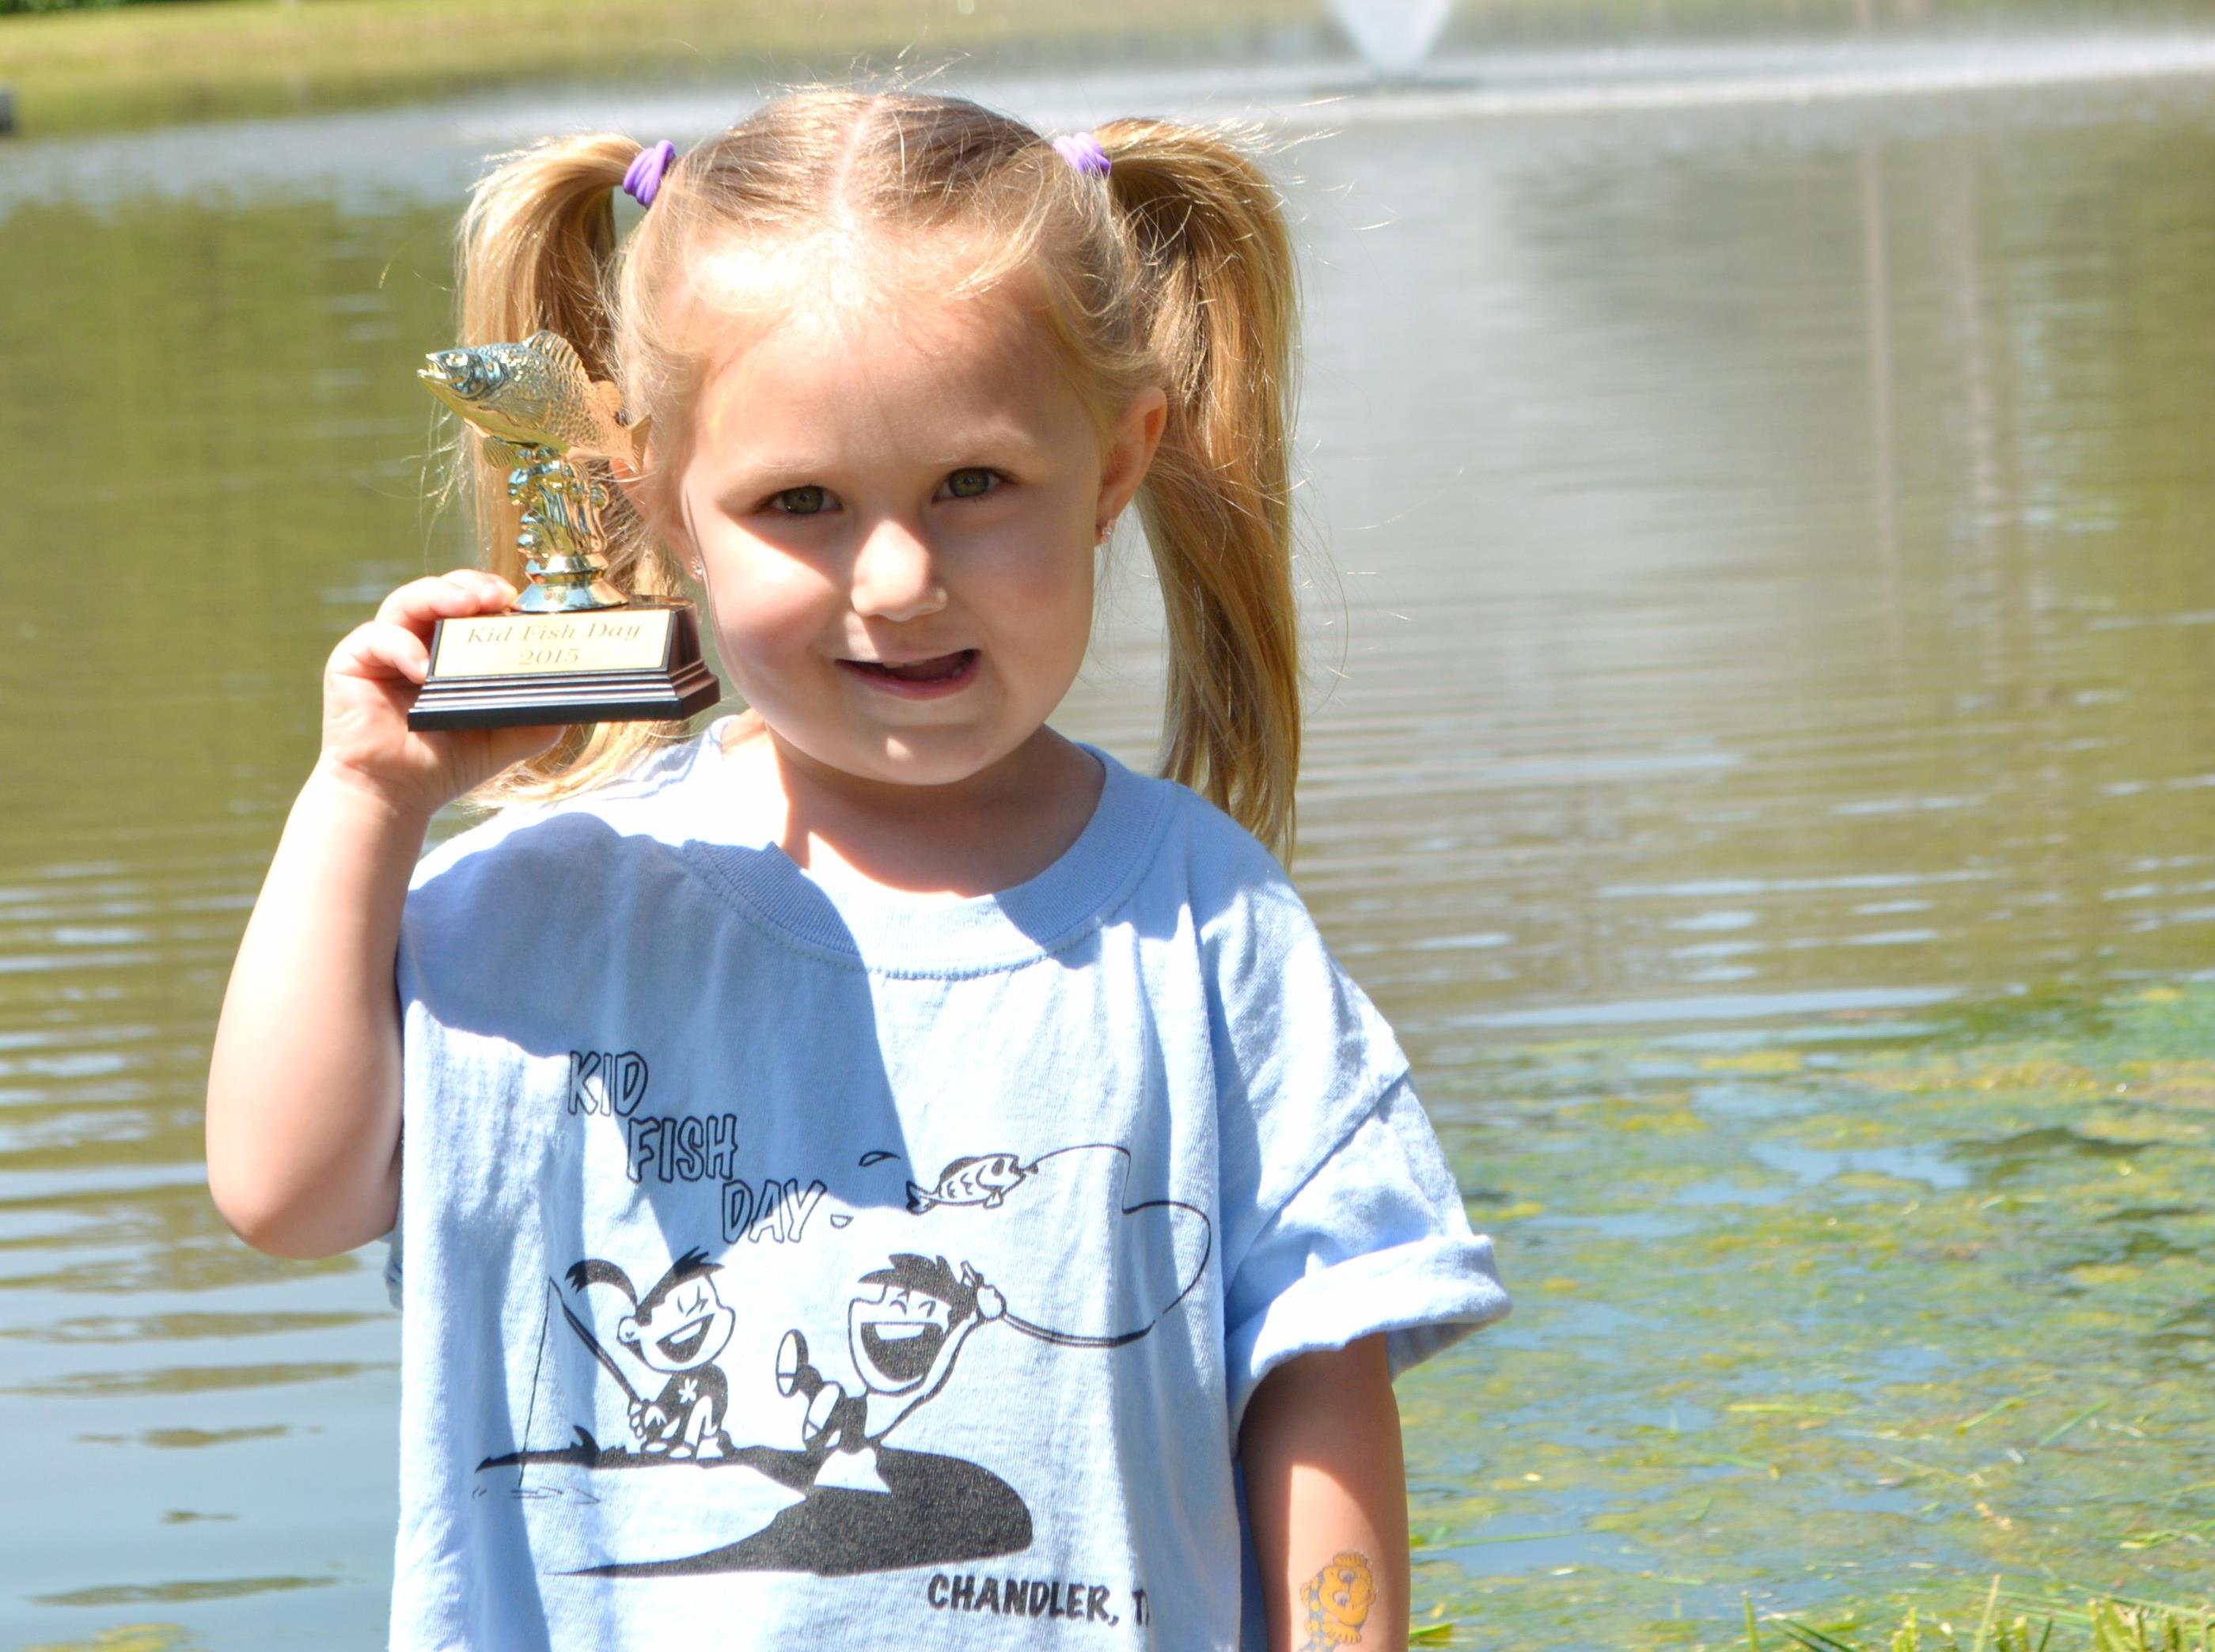 Kid Fish Day 2015 (66)